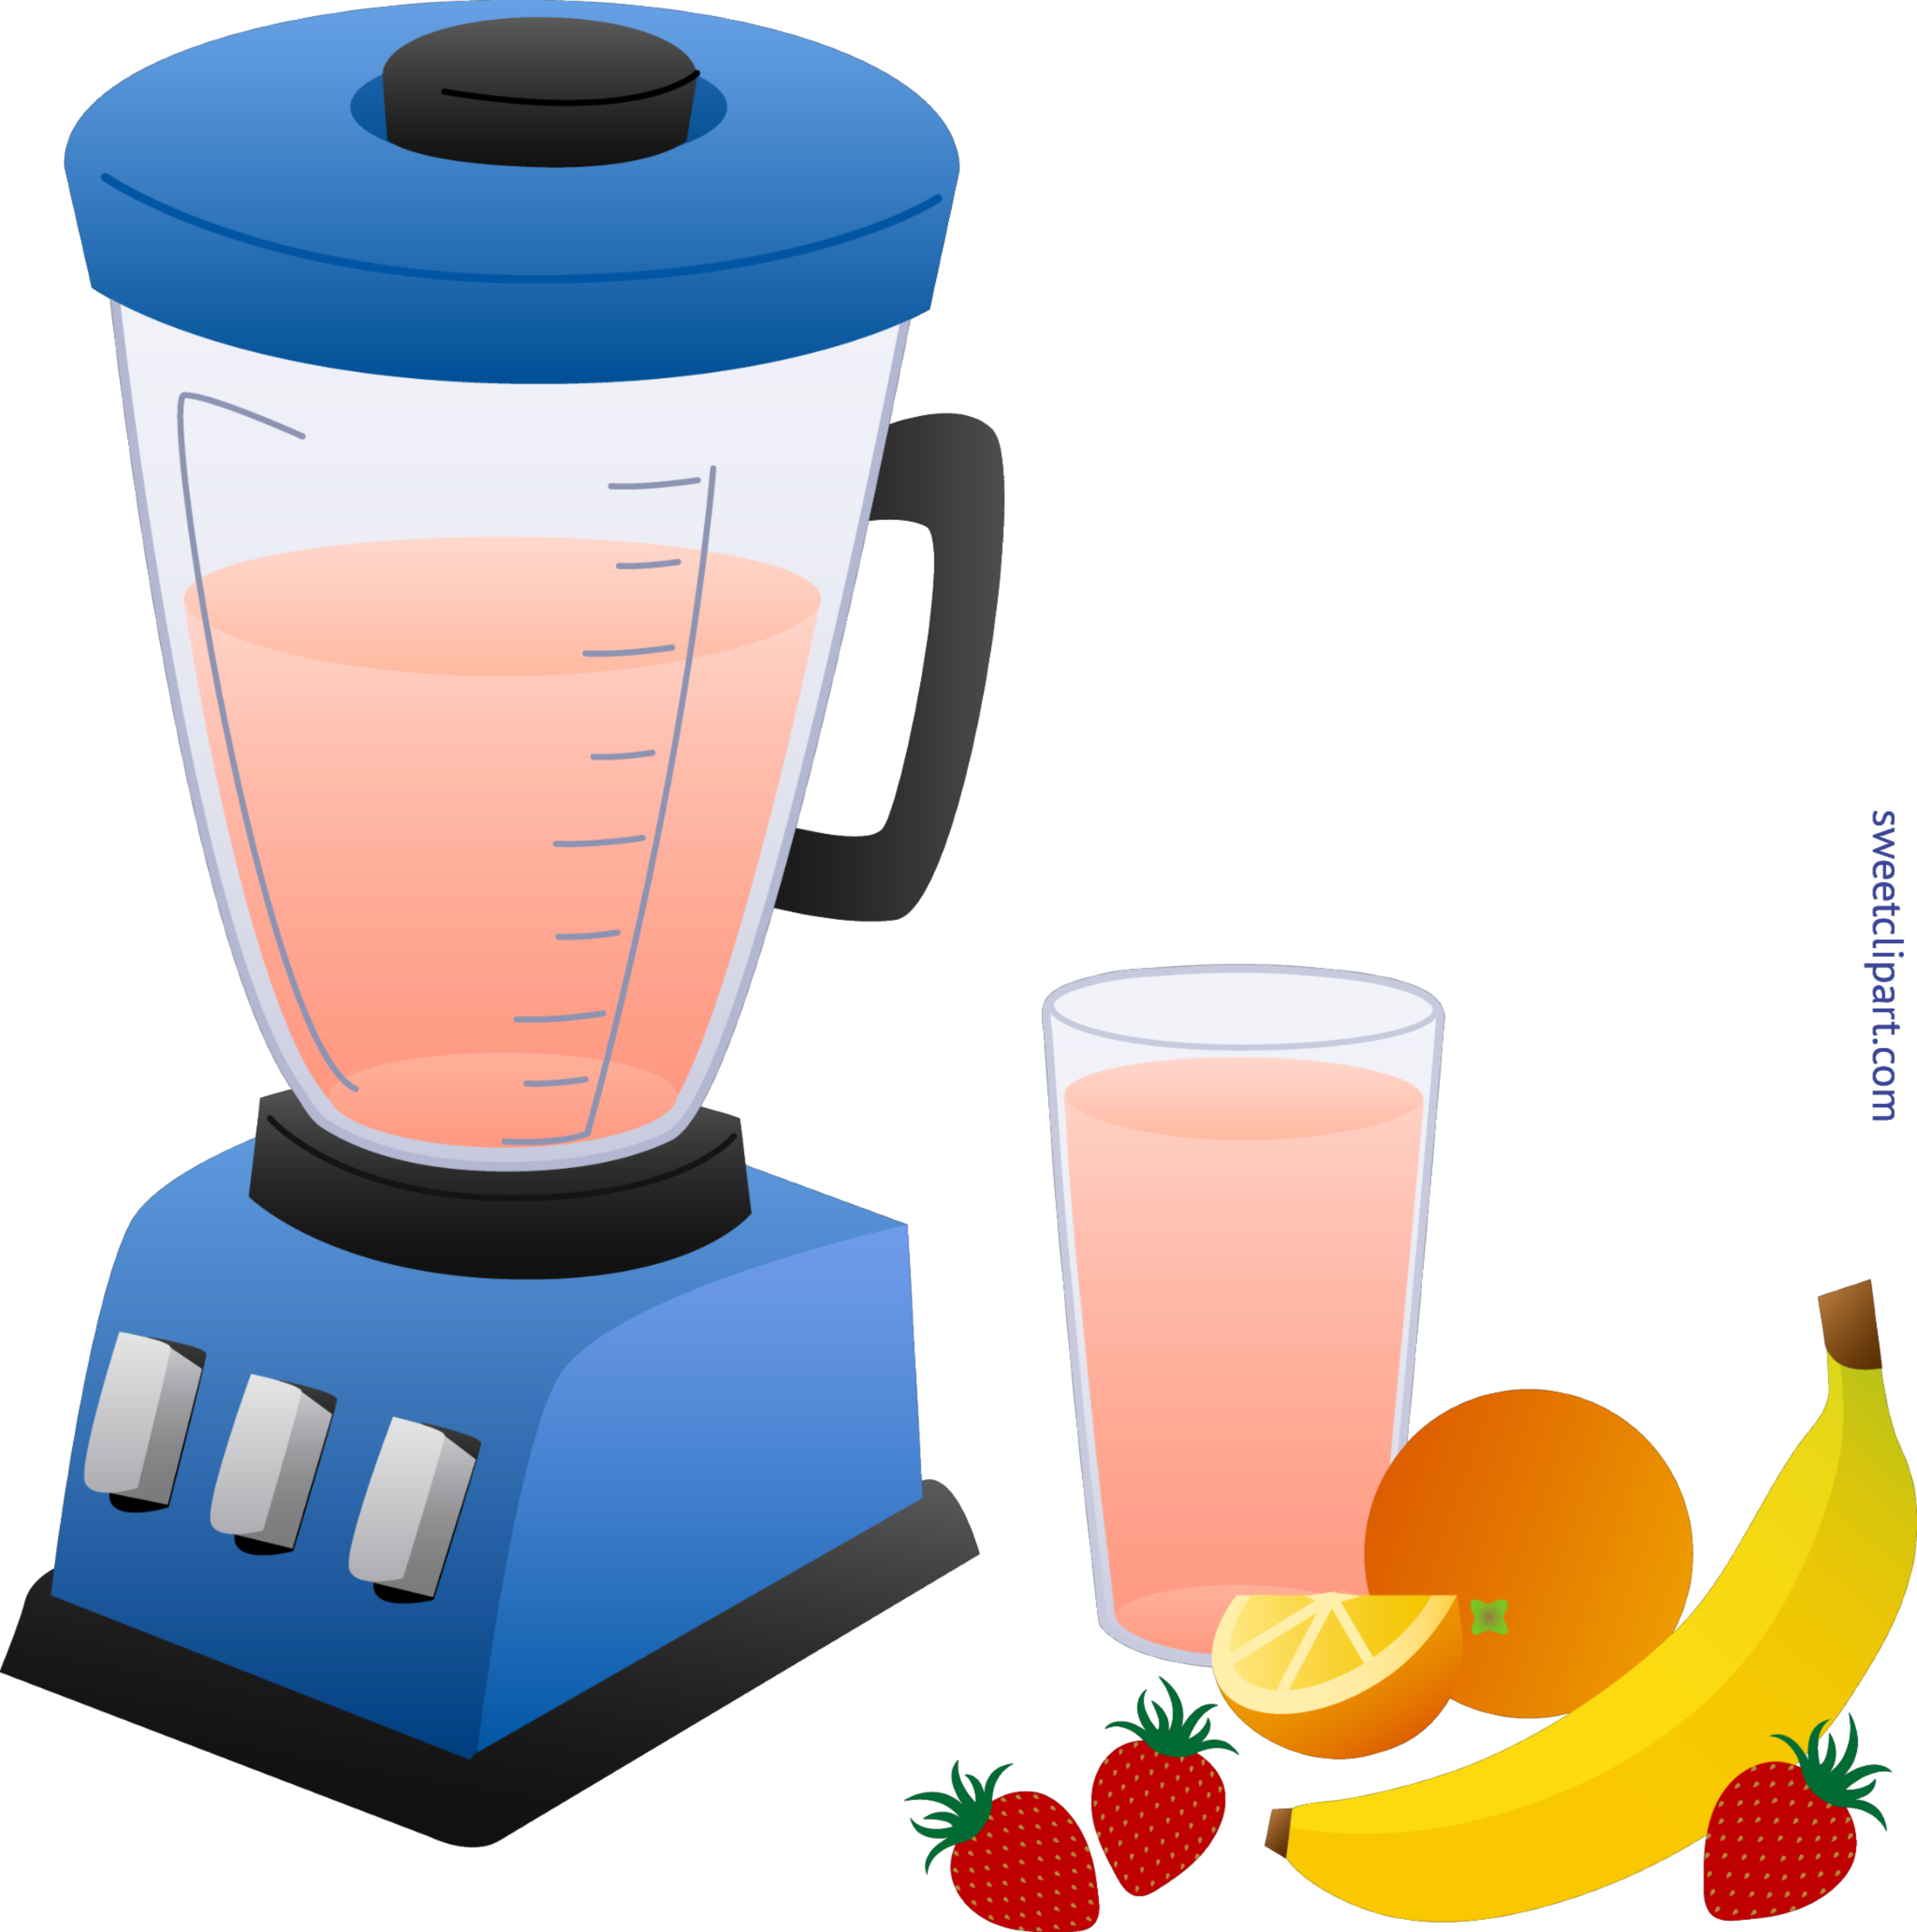 Smoothie vector clipart. Blender and fruit clip